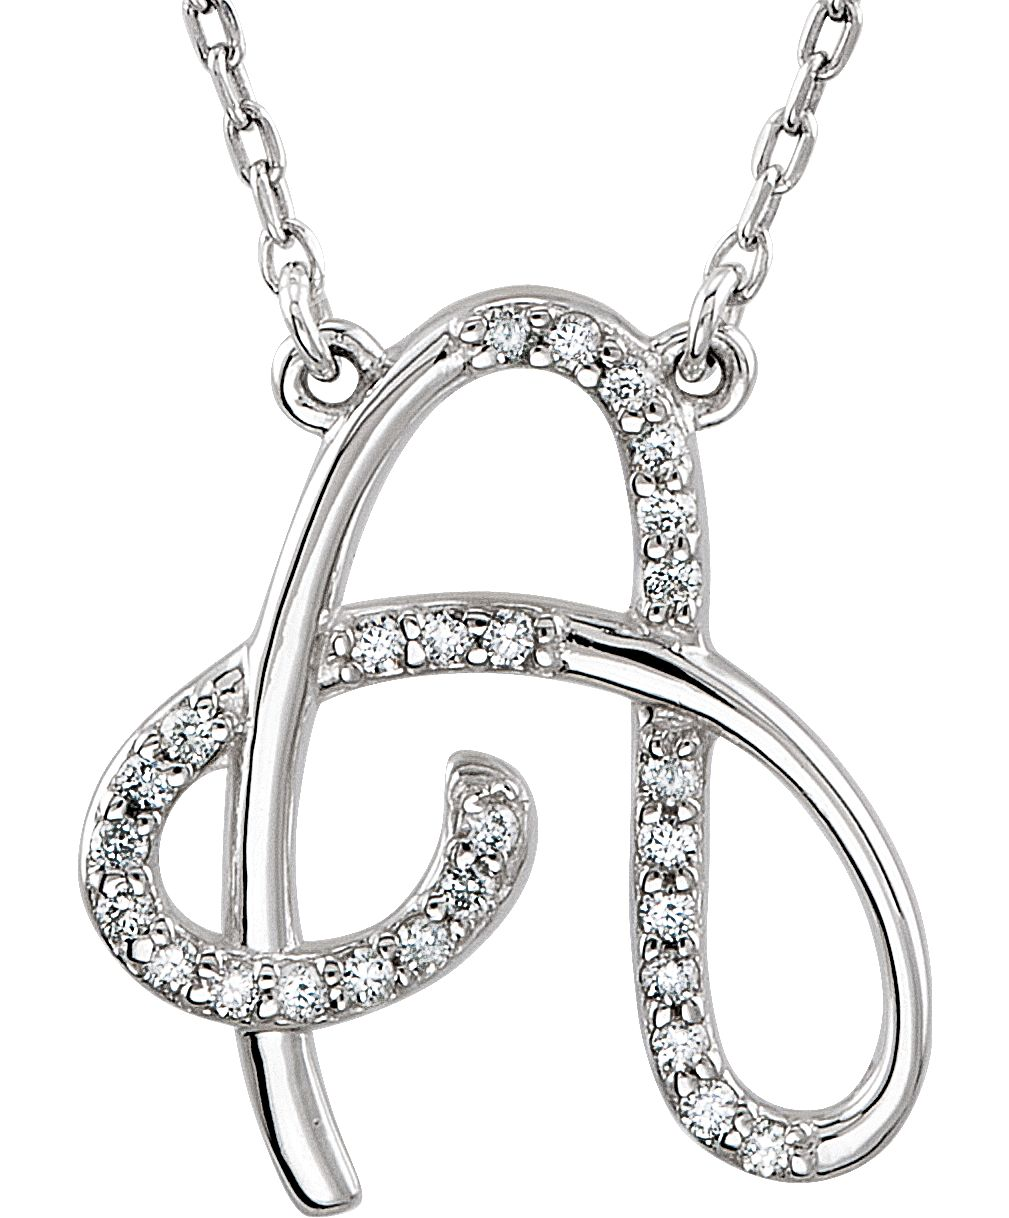 Diamond alphabet initial letter necklaces a to z boomer style diamond initial letter a 14k white gold necklace 16 aloadofball Images